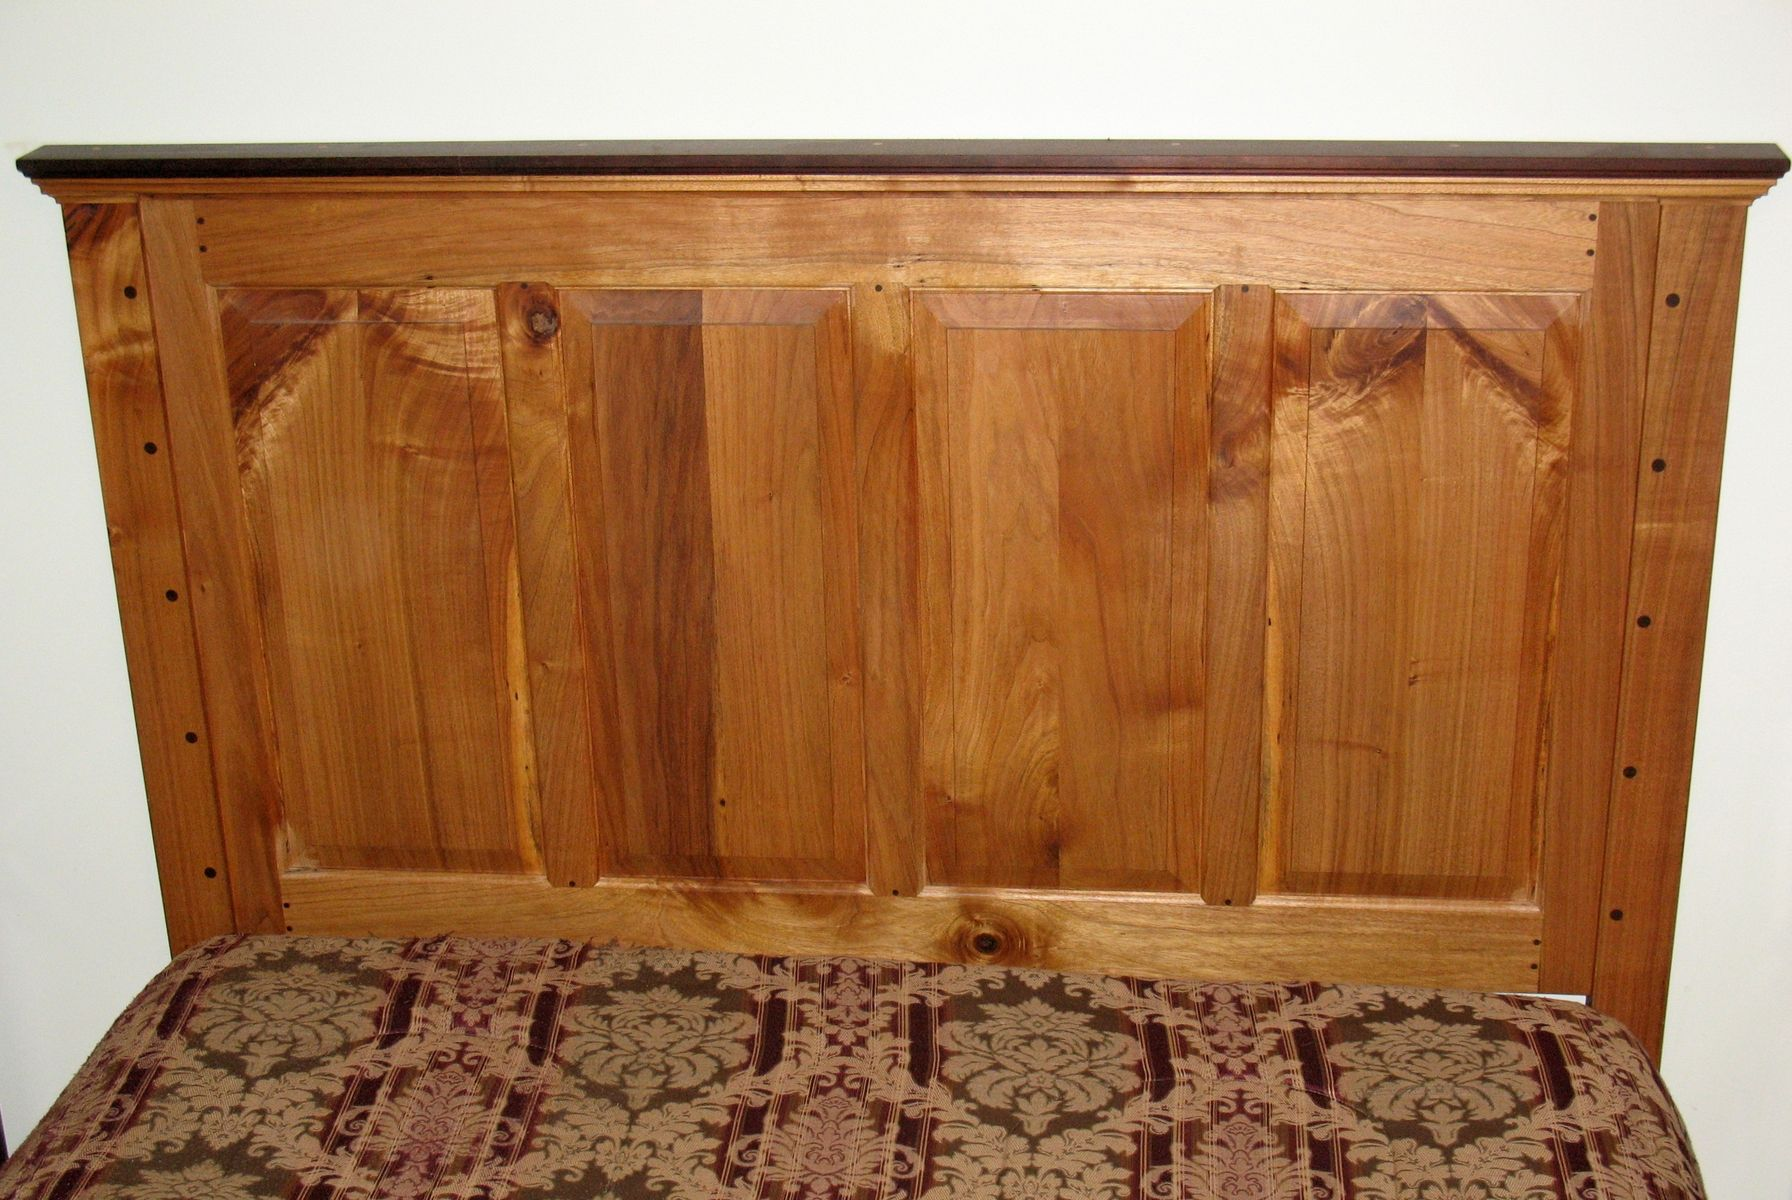 Custom Raised Panel Headboard For Queen Size Bed By White